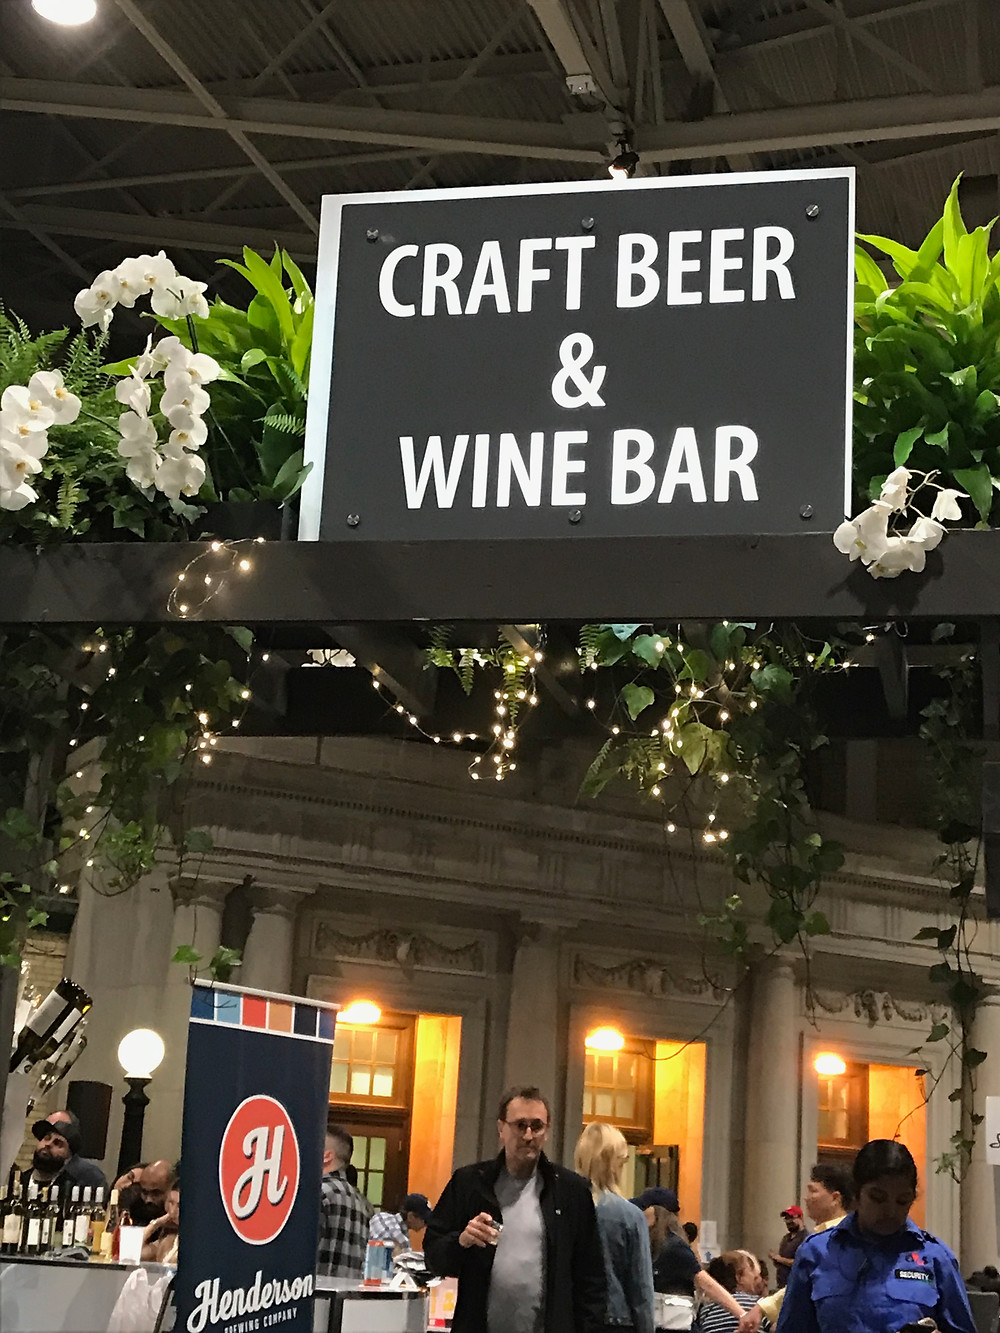 Craft Beer & Wine Bar at the C.N.E.